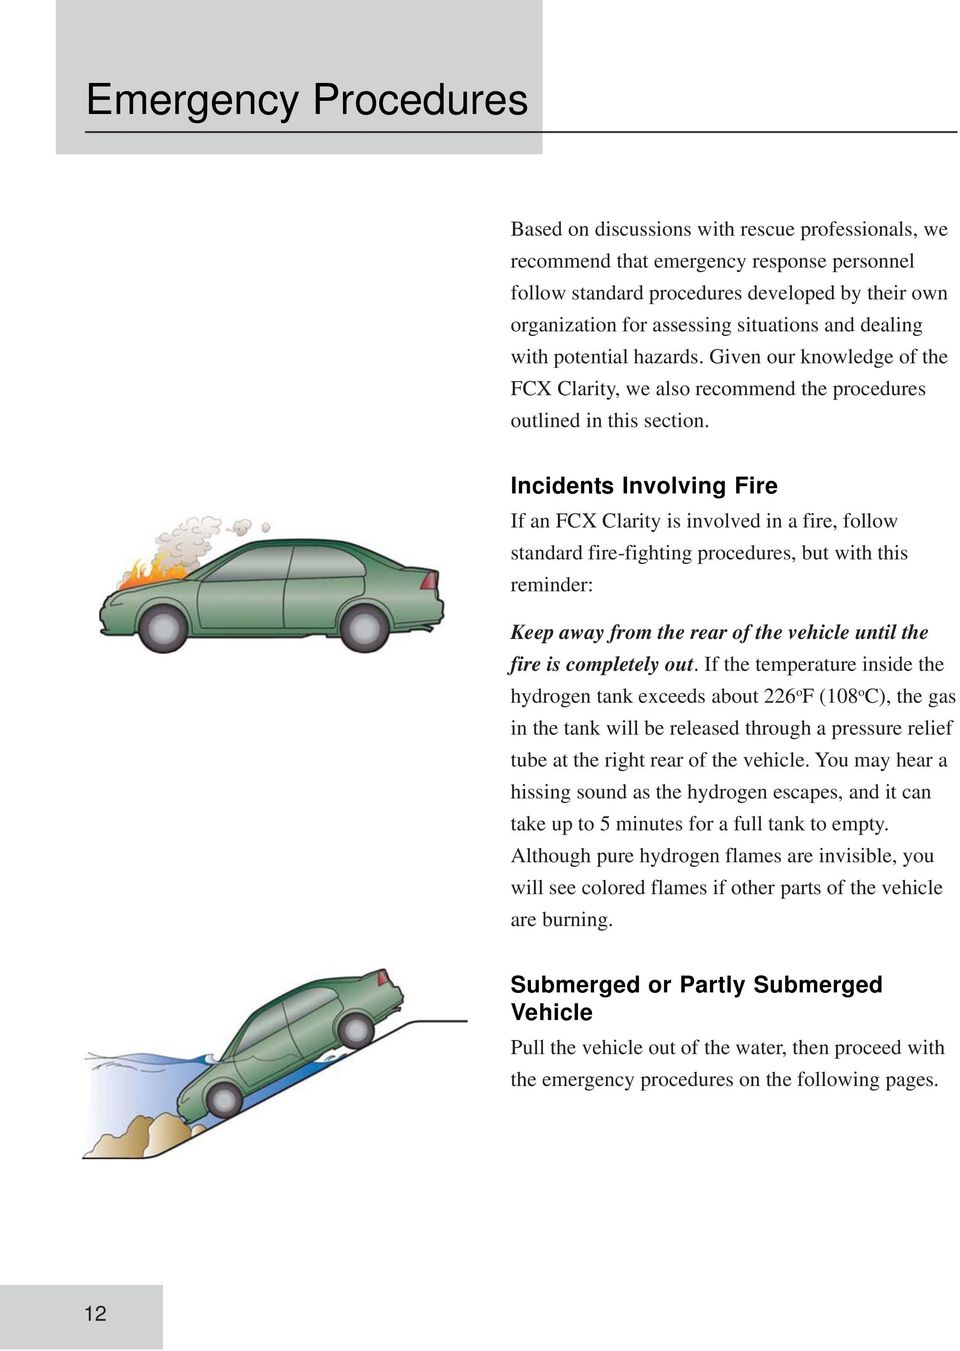 Incidents Involving Fire If an FCX Clarity is involved in a fire, follow standard fire-fighting procedures, but with this reminder: Keep away from the rear of the vehicle until the fire is completely